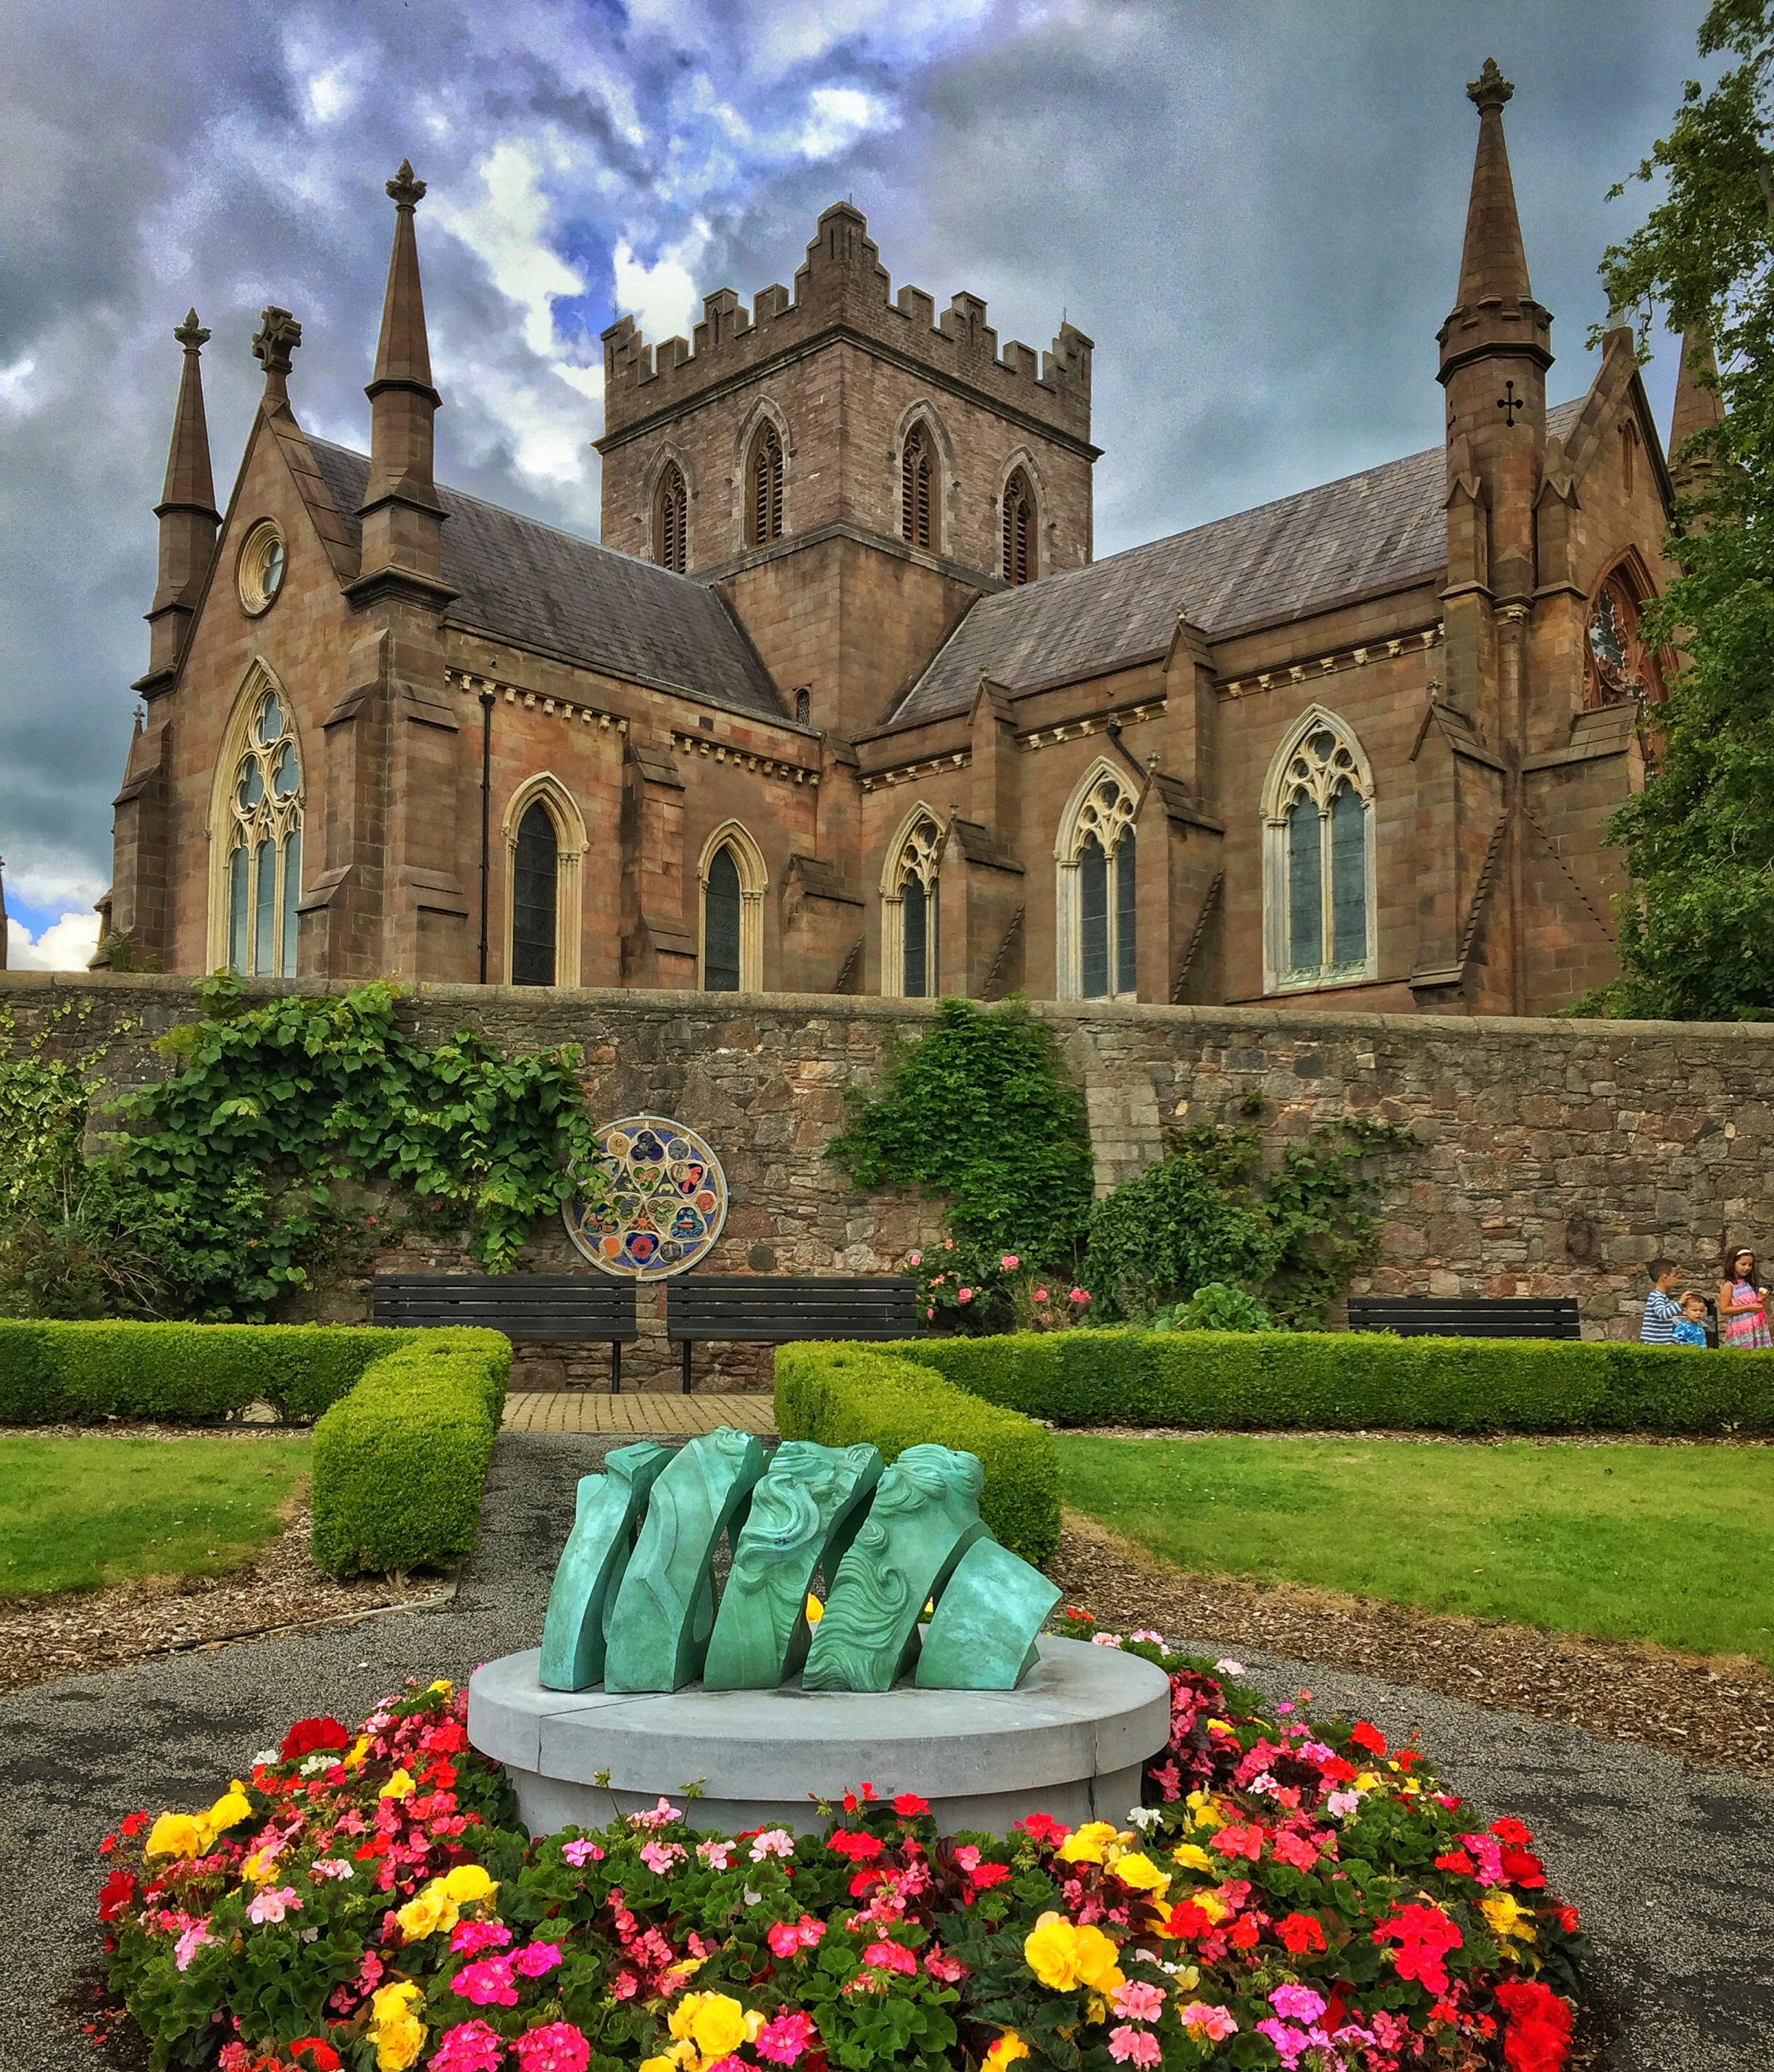 This is an iPhone shot from St. Patrick's Church of Ireland Cathedral in Armagh, Ireland.